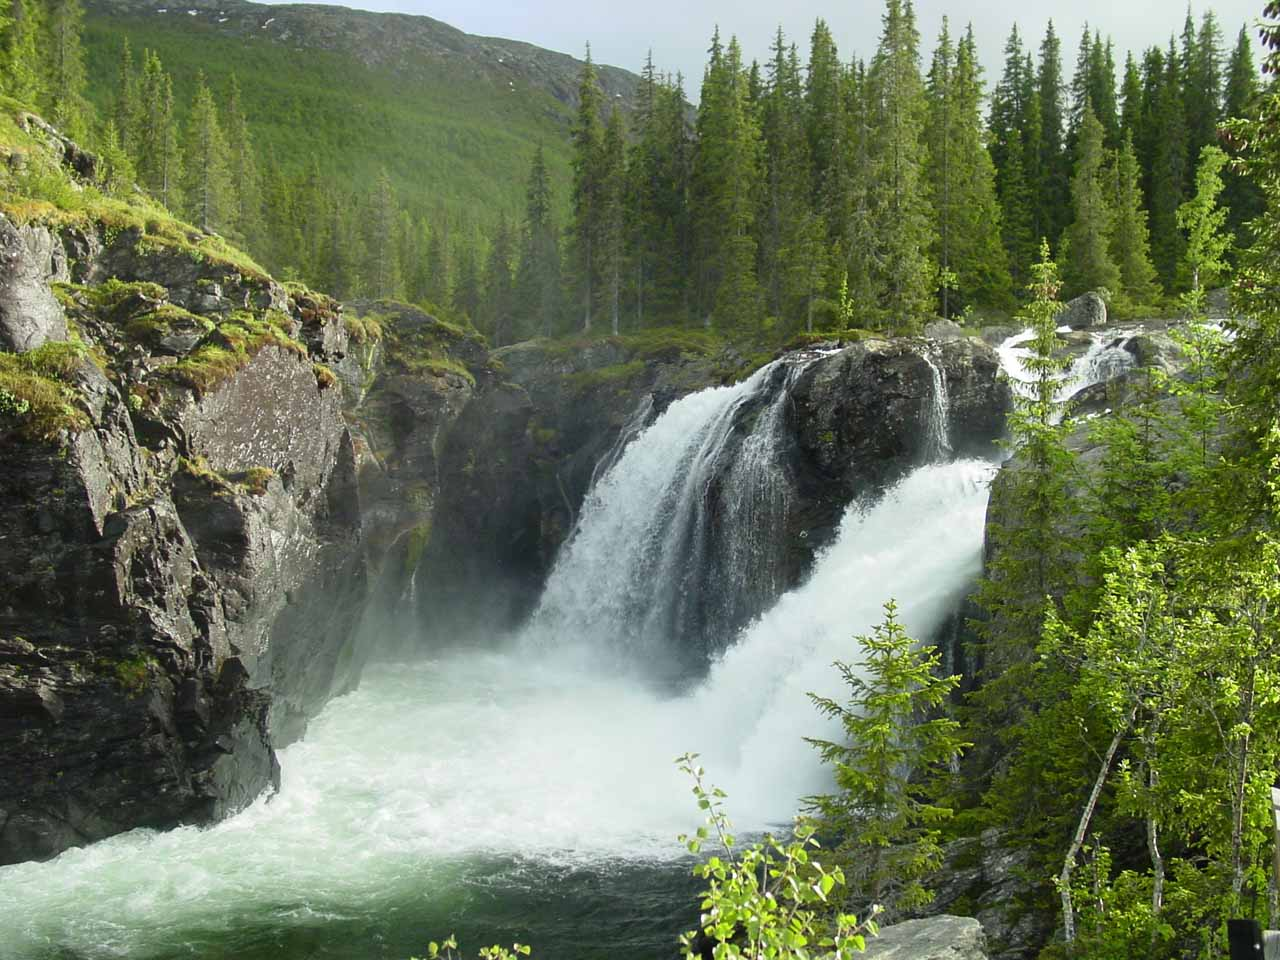 Just a little over 13km west of Hydnefossen was the powerful Rjukandefossen, which was sort of a bonus waterfall for us